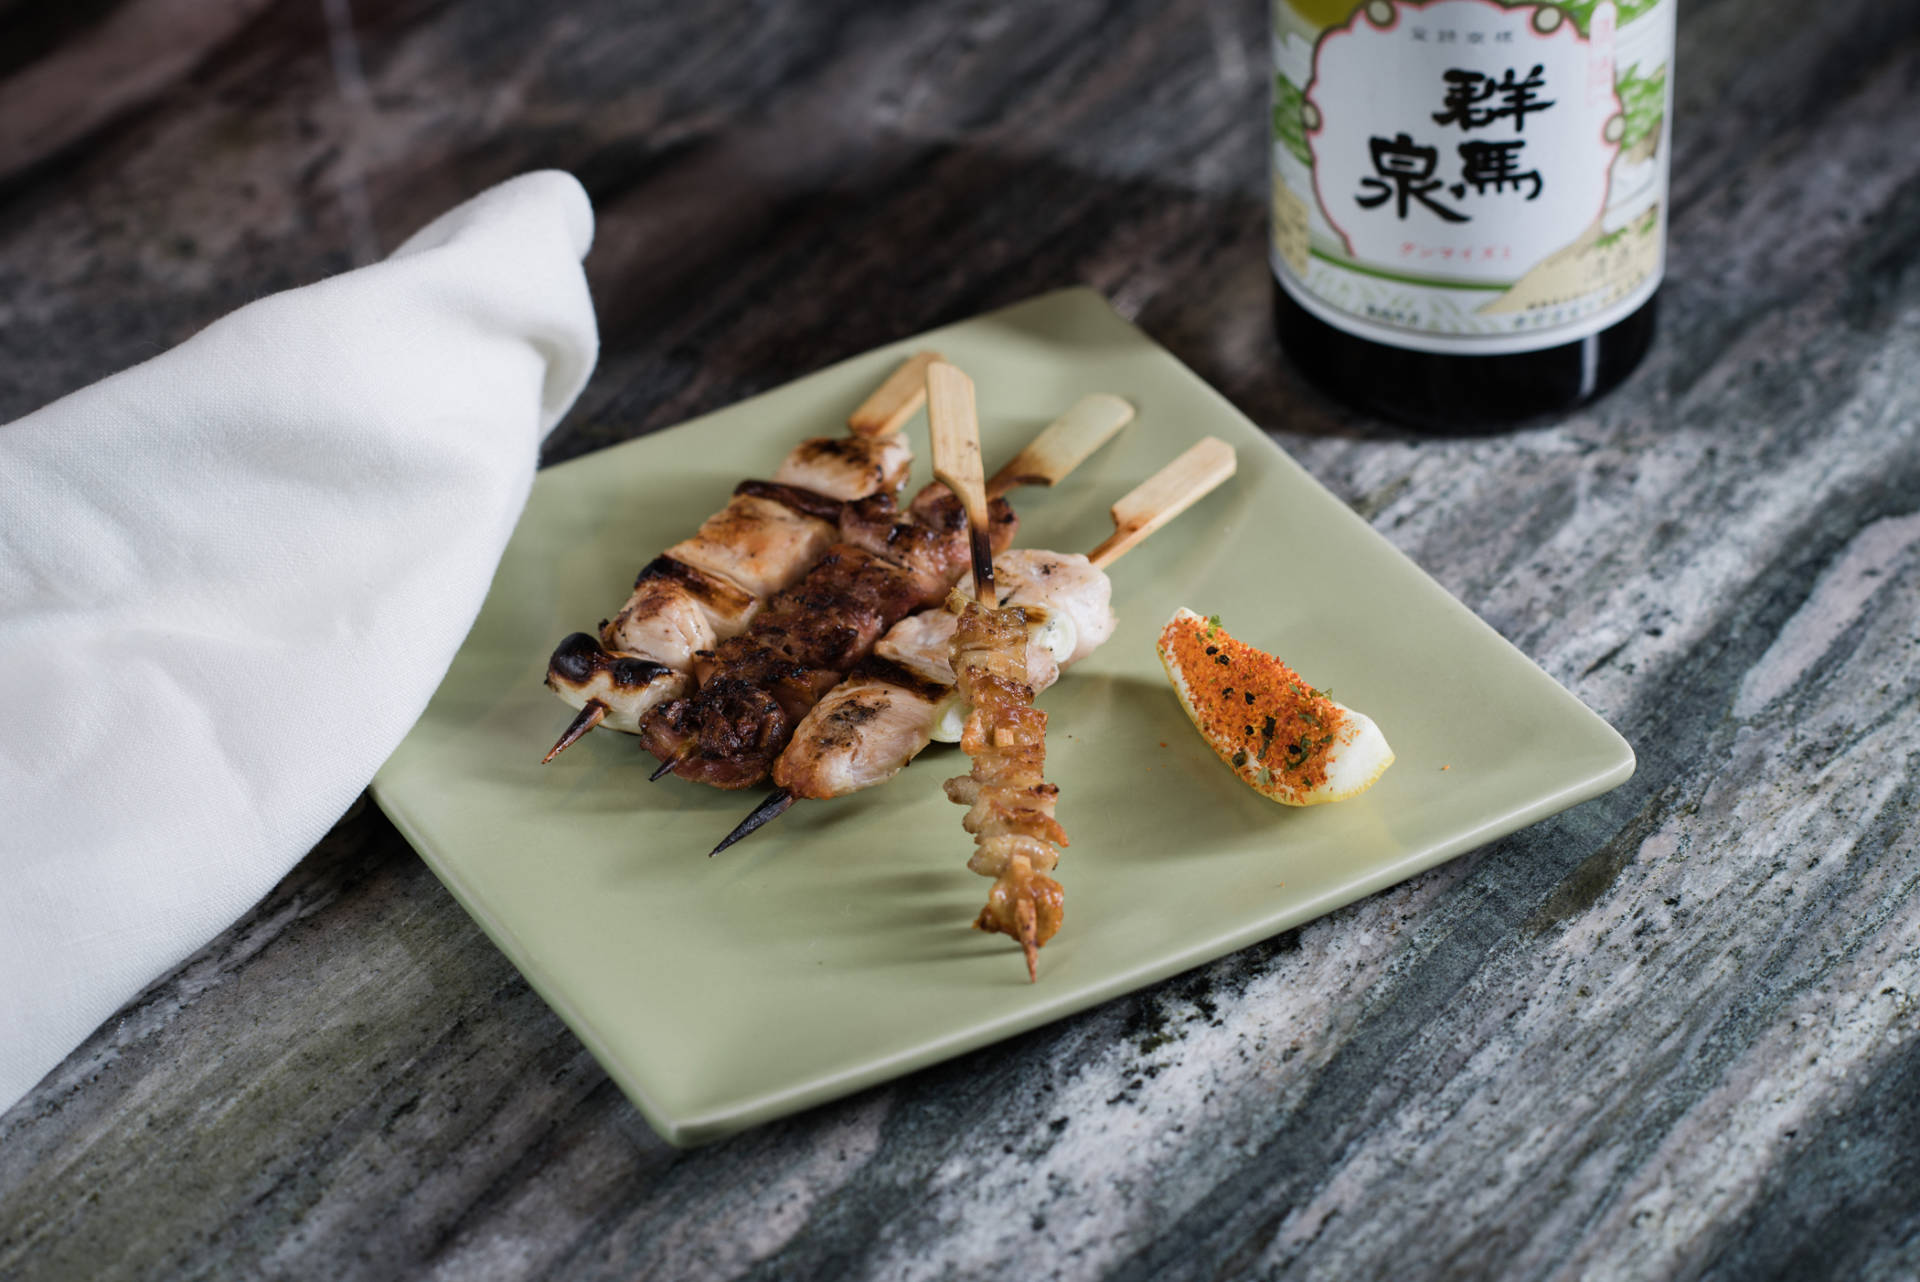 Get a taste of yakitori from chef Curtis DiFede at Miminashi in Napa.